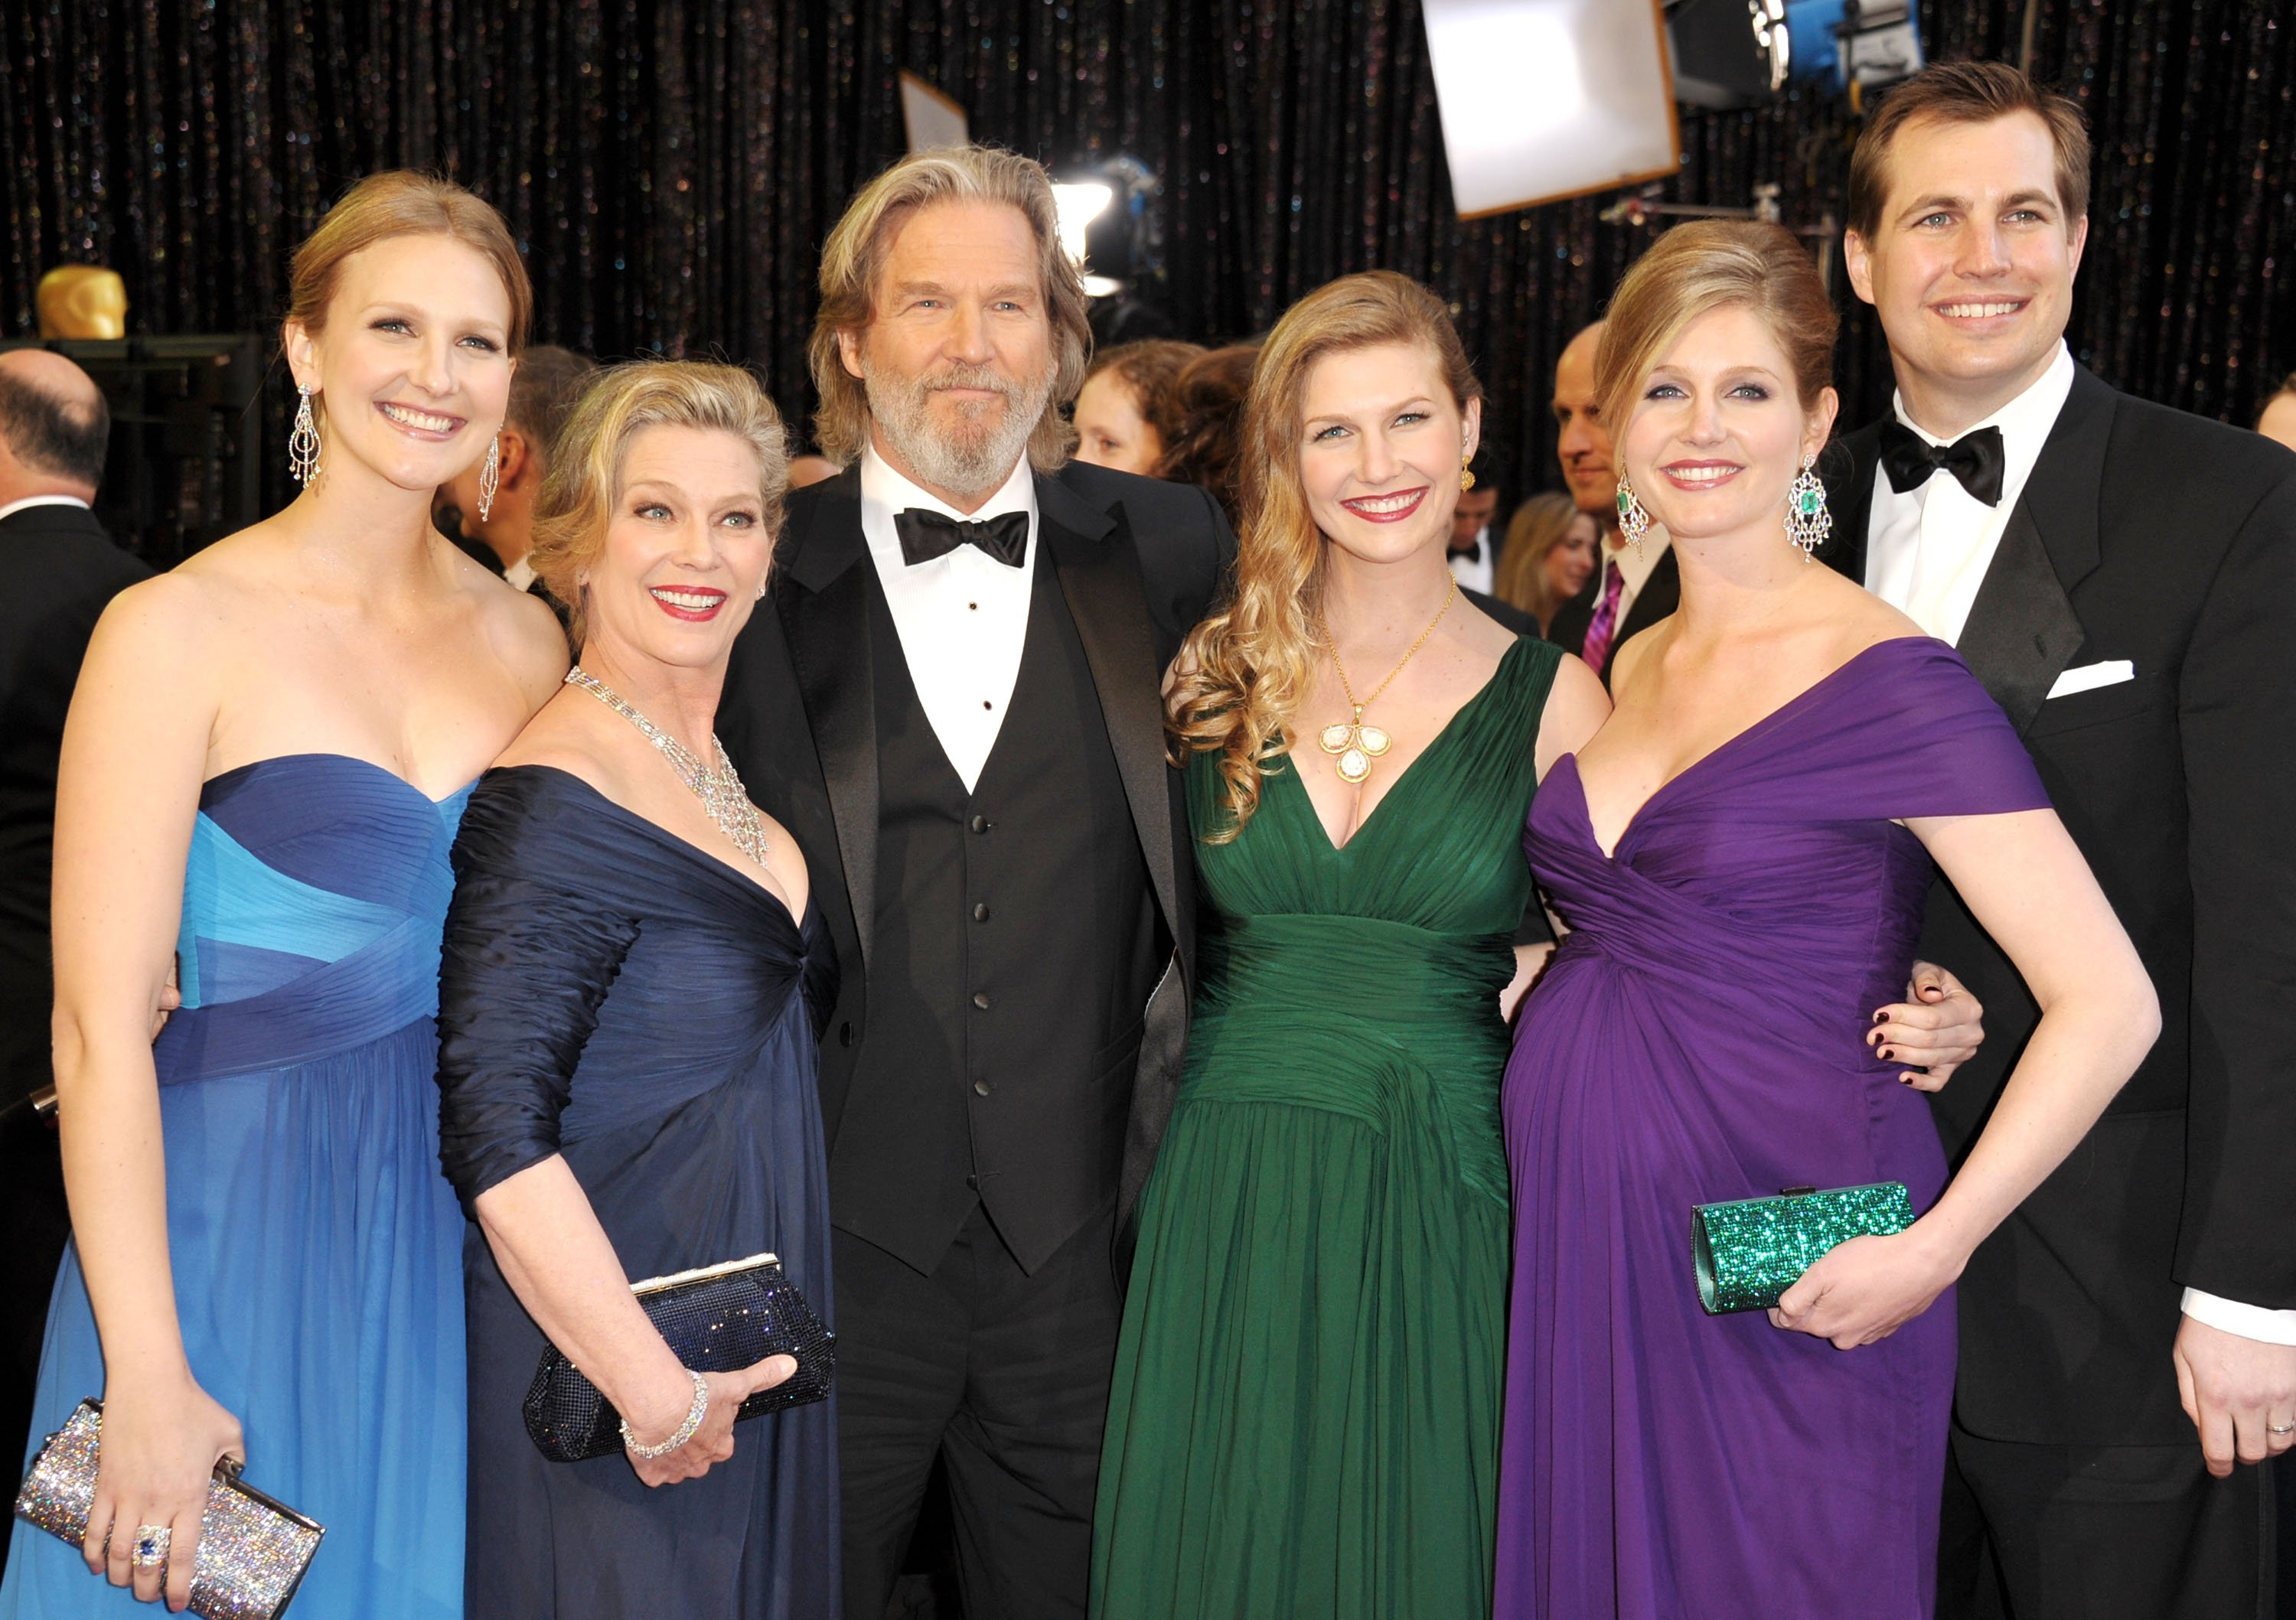 Jeff Bridges, Susan Bridges, and family arrive at the 83rd Annual Academy Awards on February 27, 2011. | Source: Getty Images